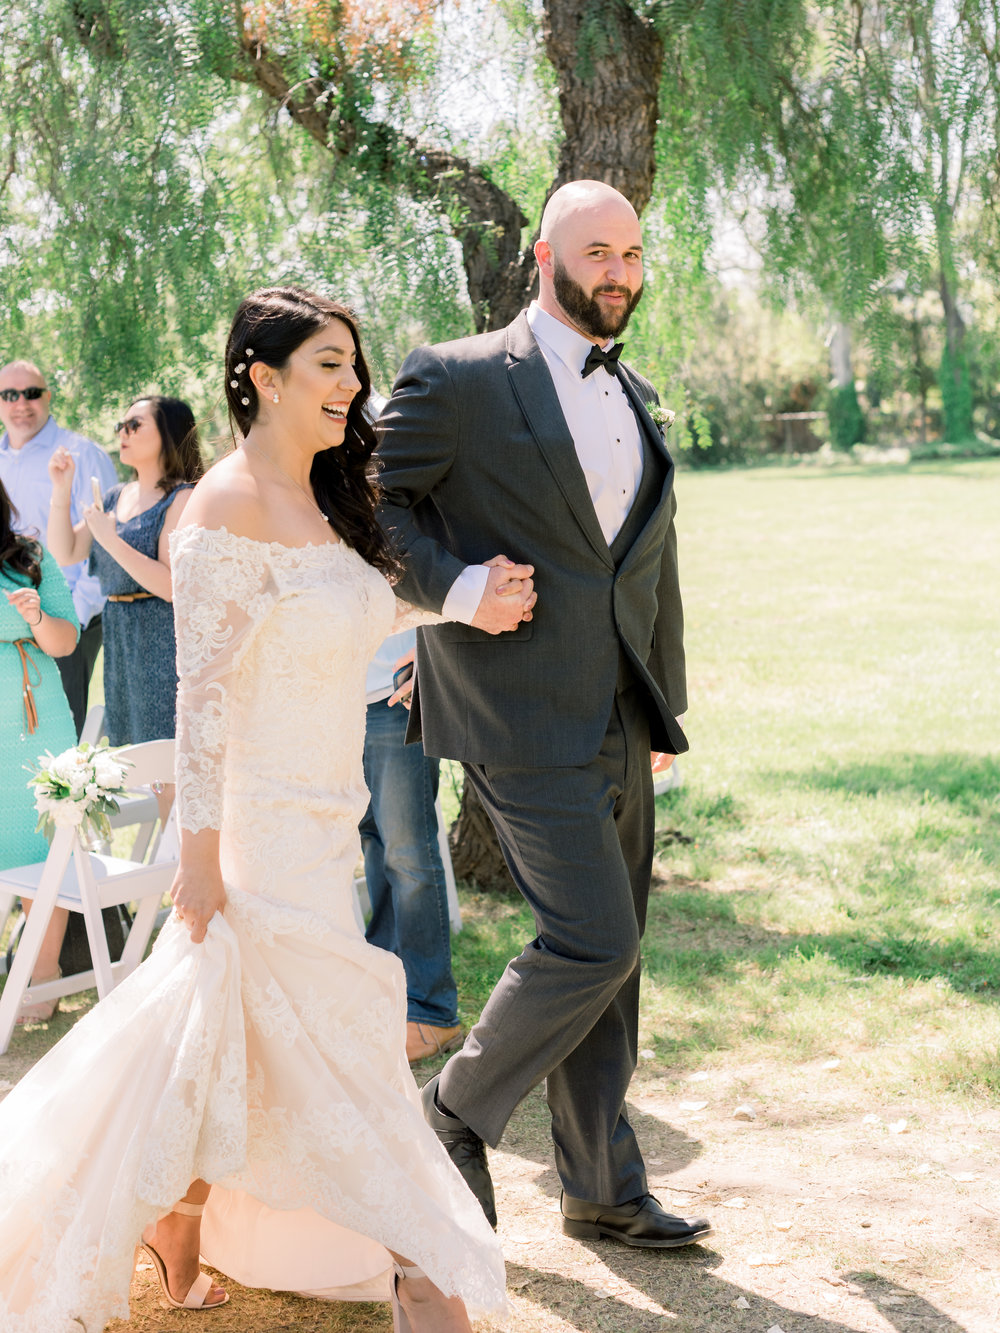 bride-and-groom-walk-back-down-the-aisle-just-married.jpg